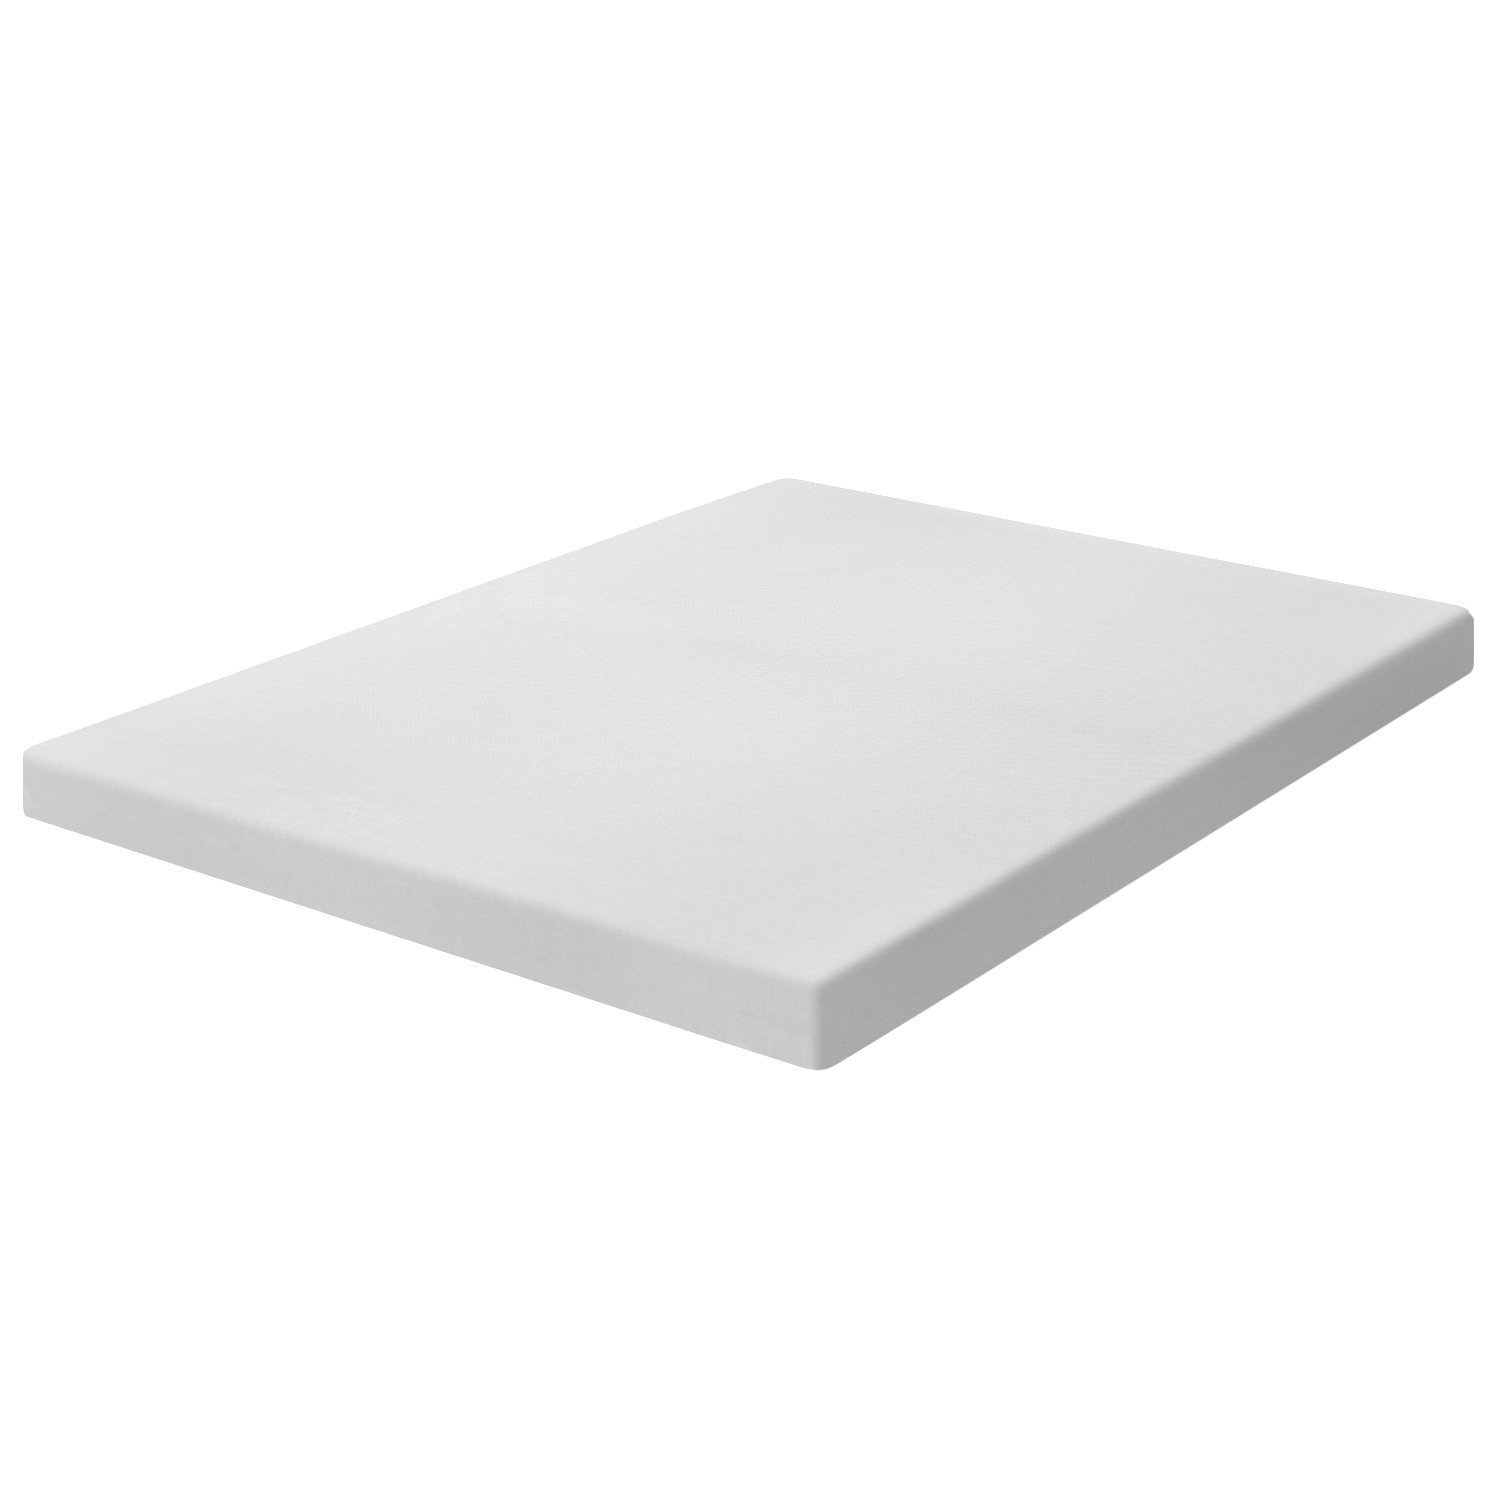 amazoncom best price mattress 4inch memory foam mattress topper queen kitchen u0026 dining